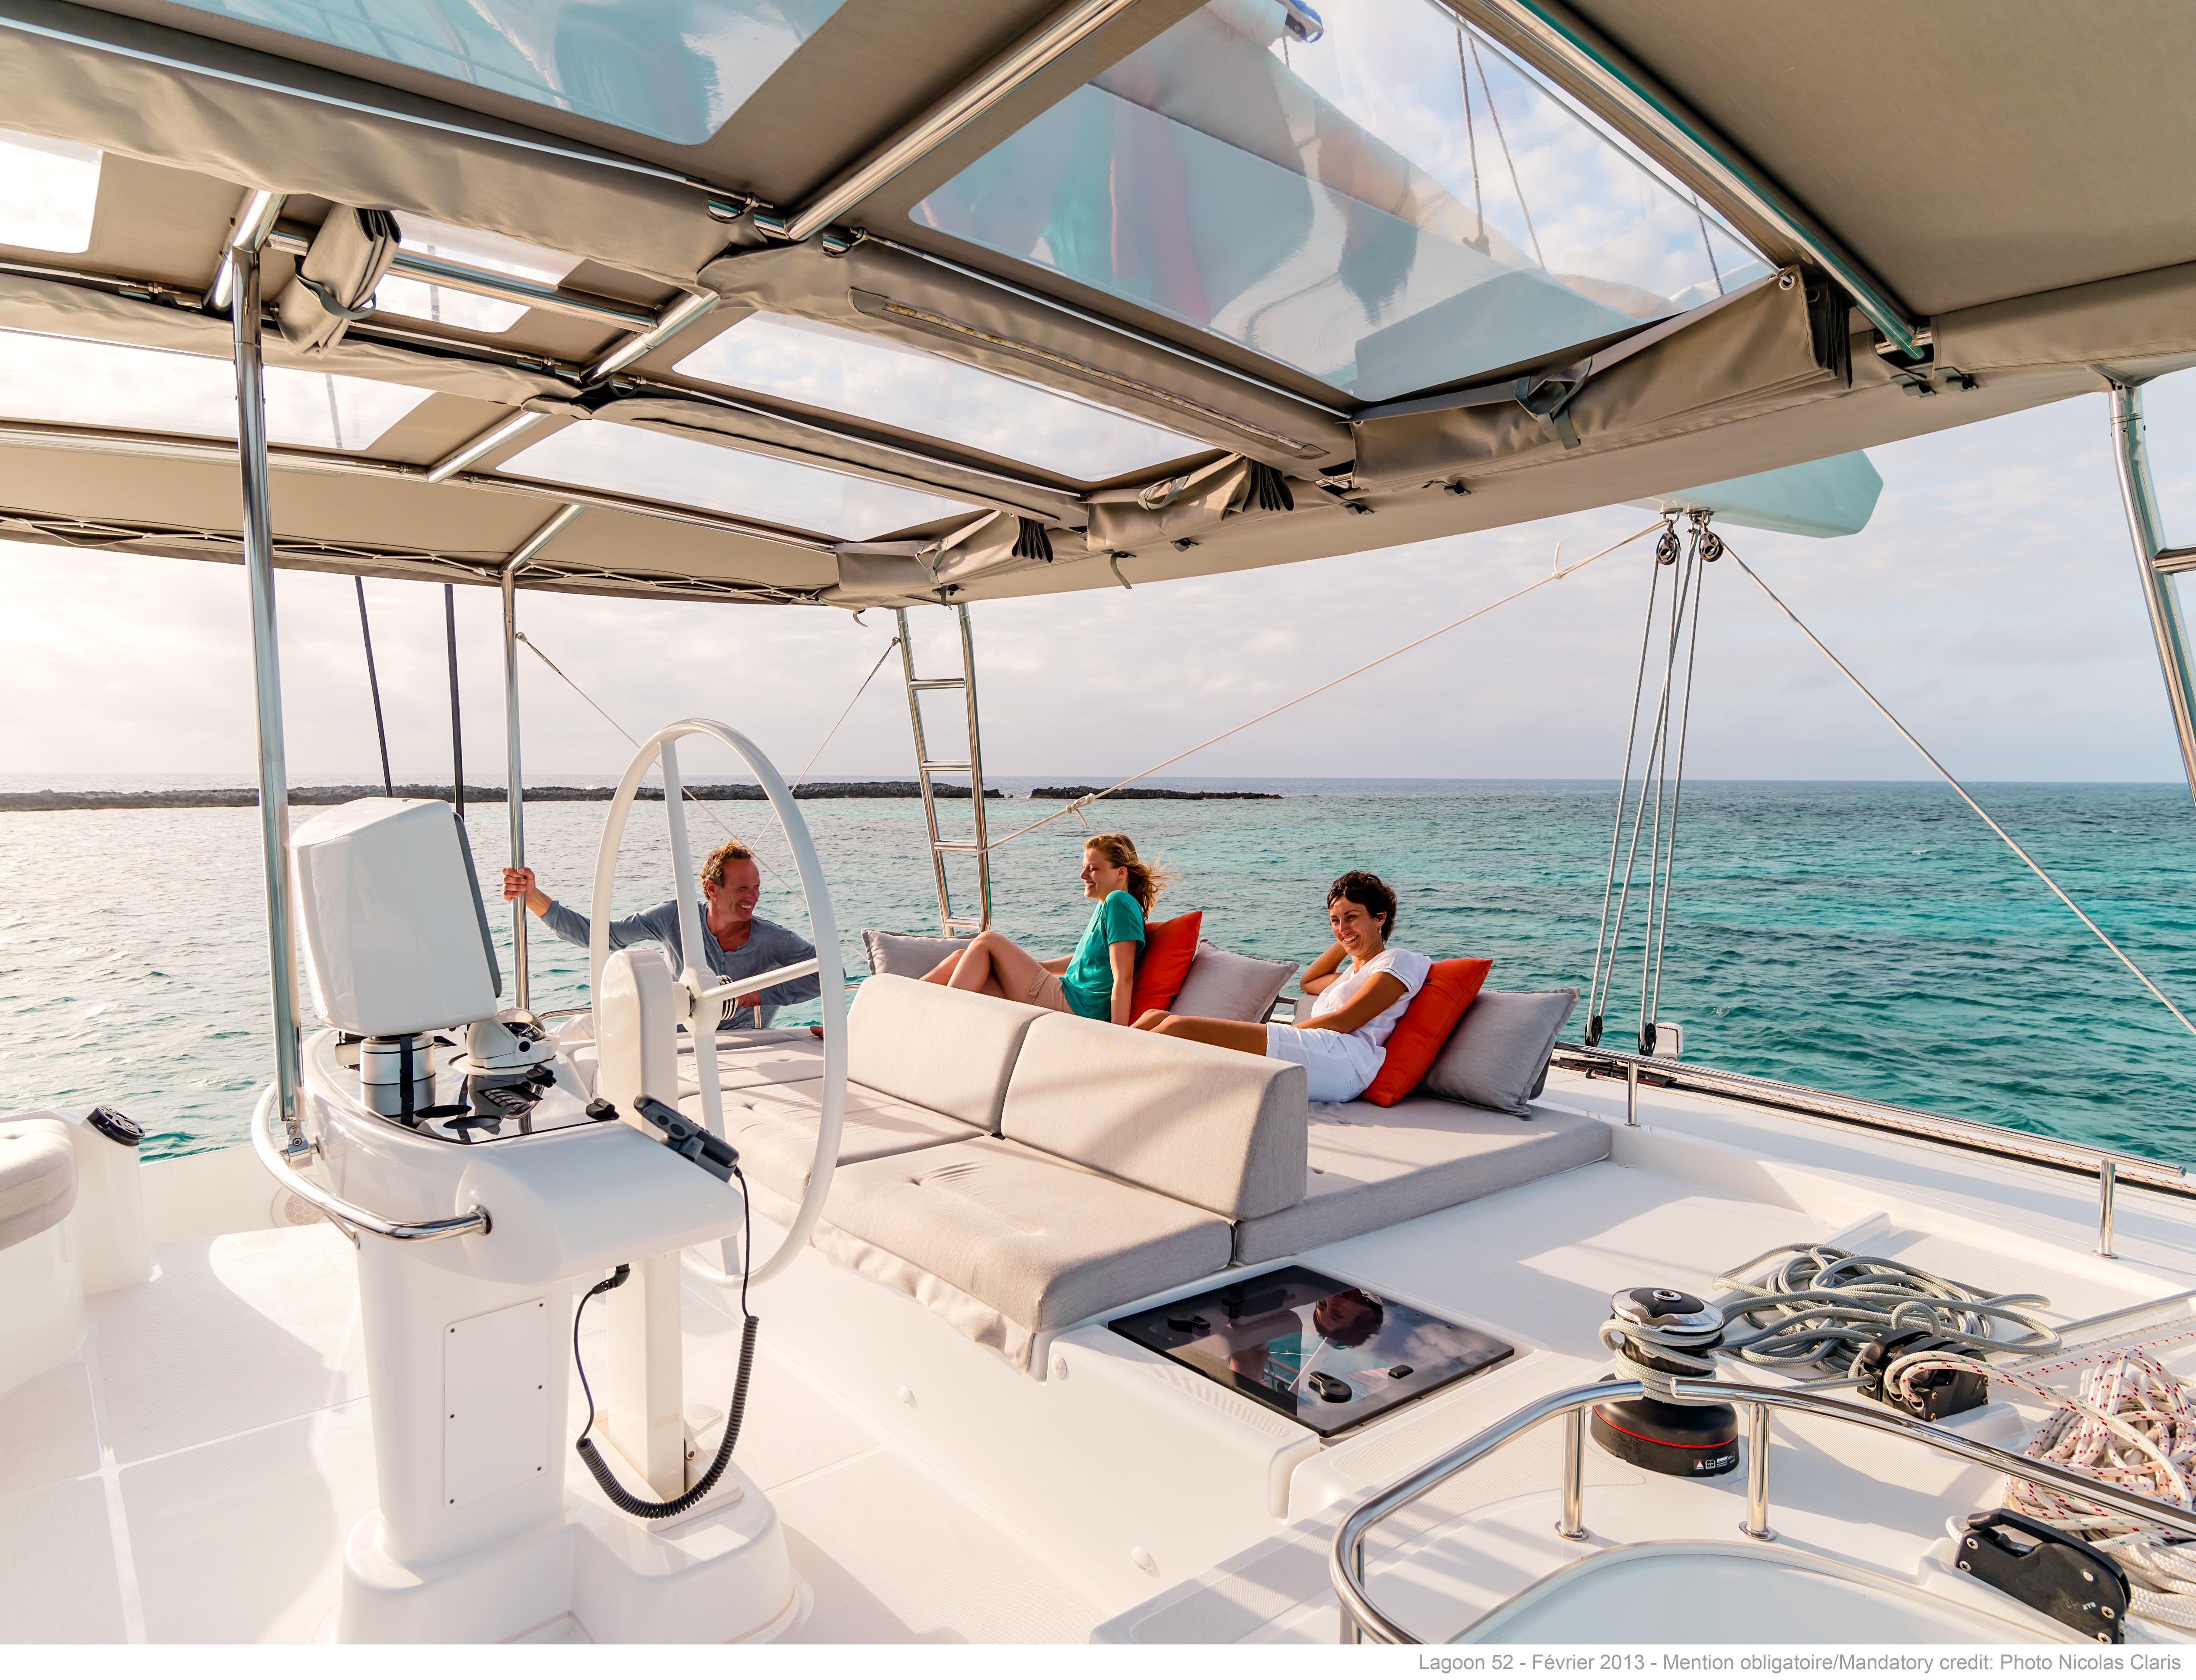 helloManufacturer Provided Image: Lagoon 52 F Flybridge